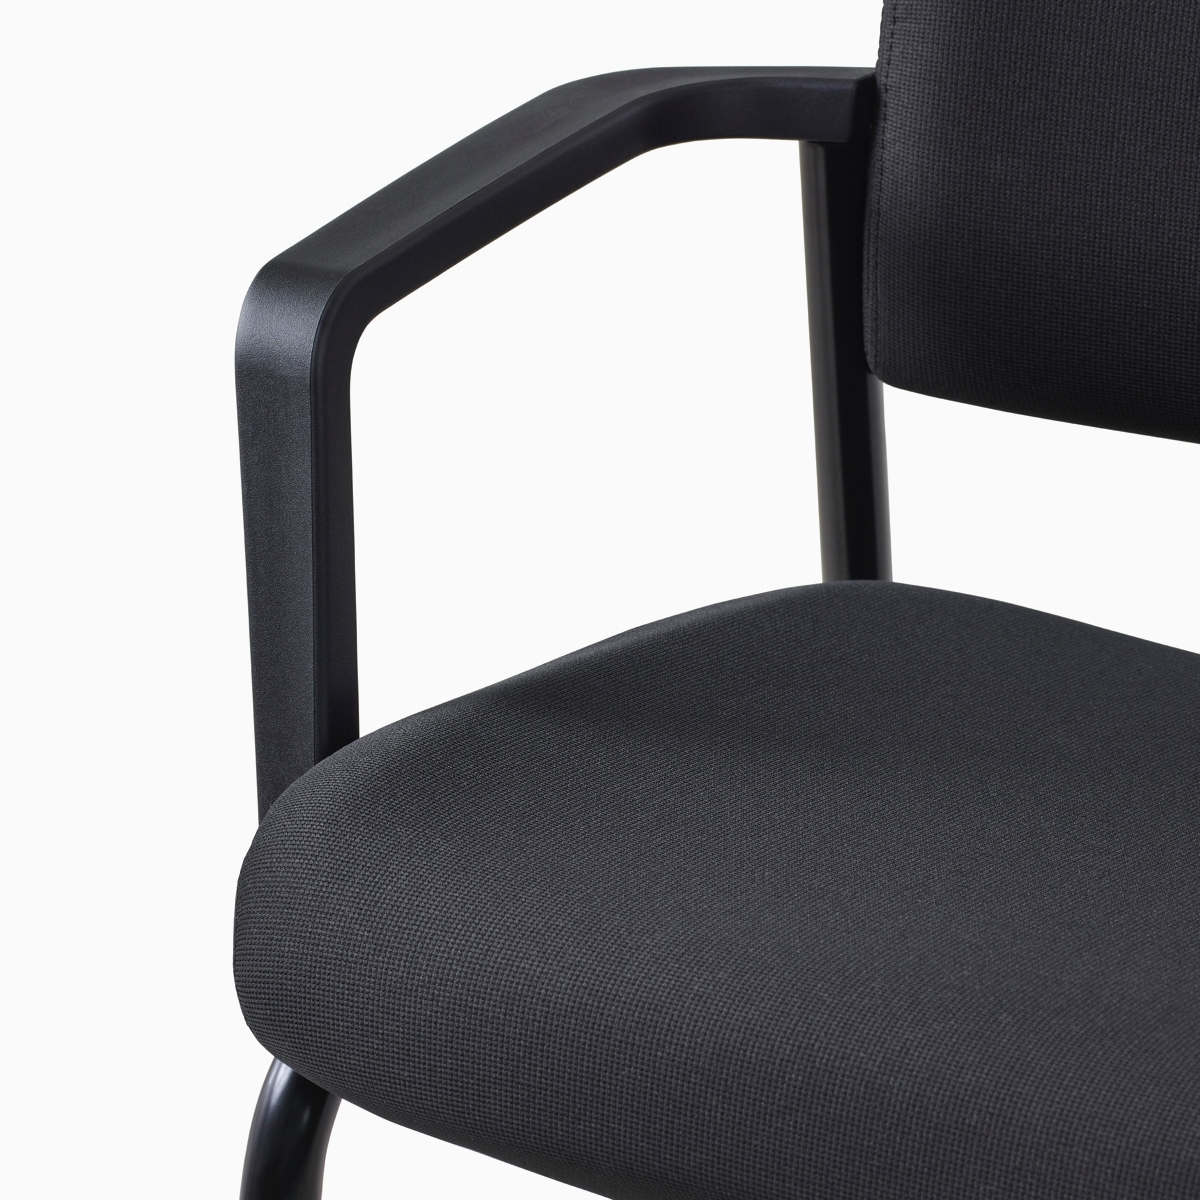 A close-up view of a Verus Side Chair's black upholstered seat with arms.